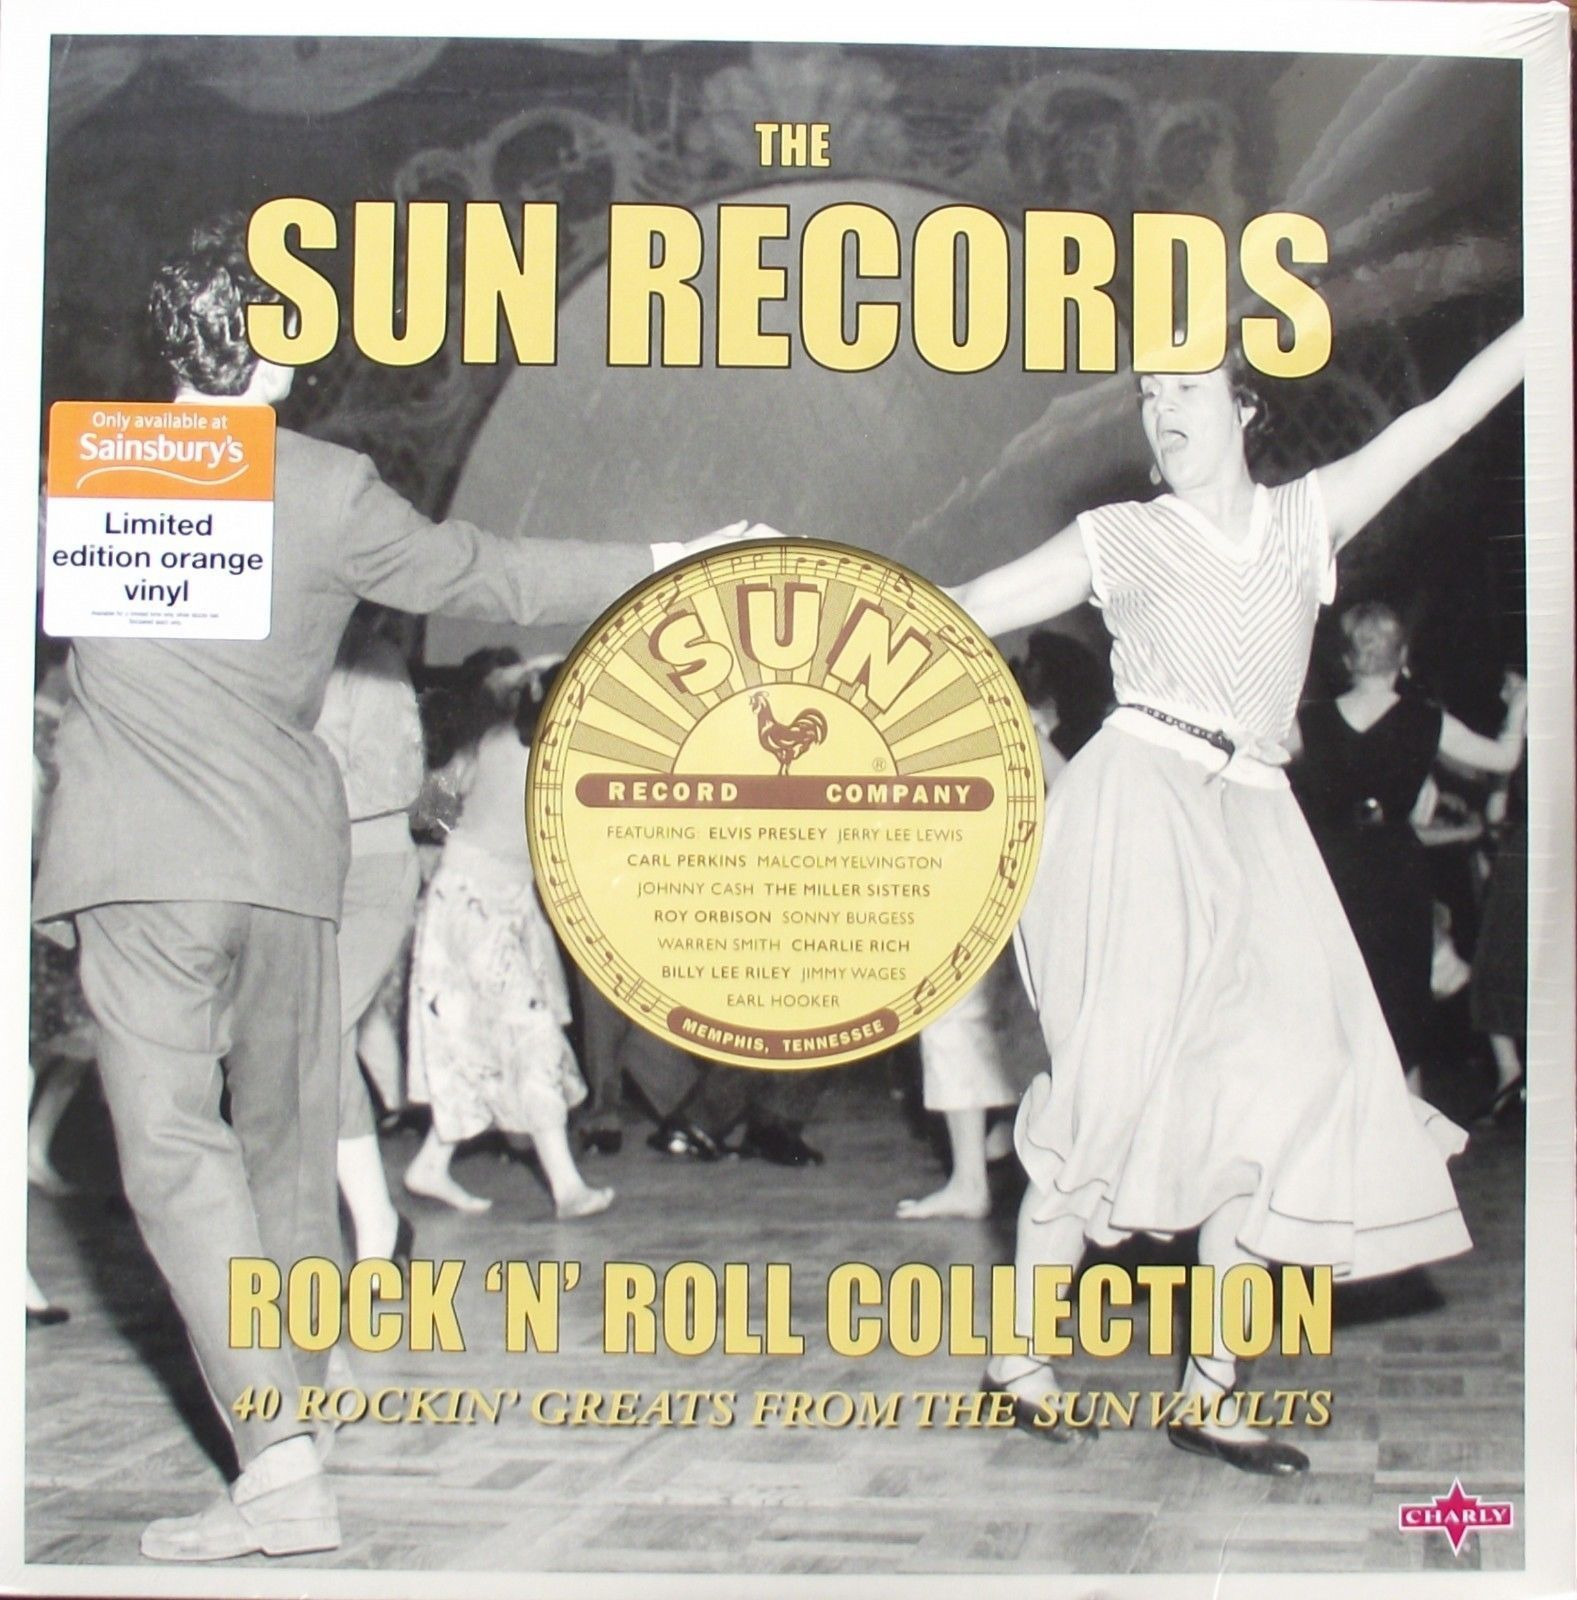 The Sun Records Rock N Collection 40 Rockin Greats From